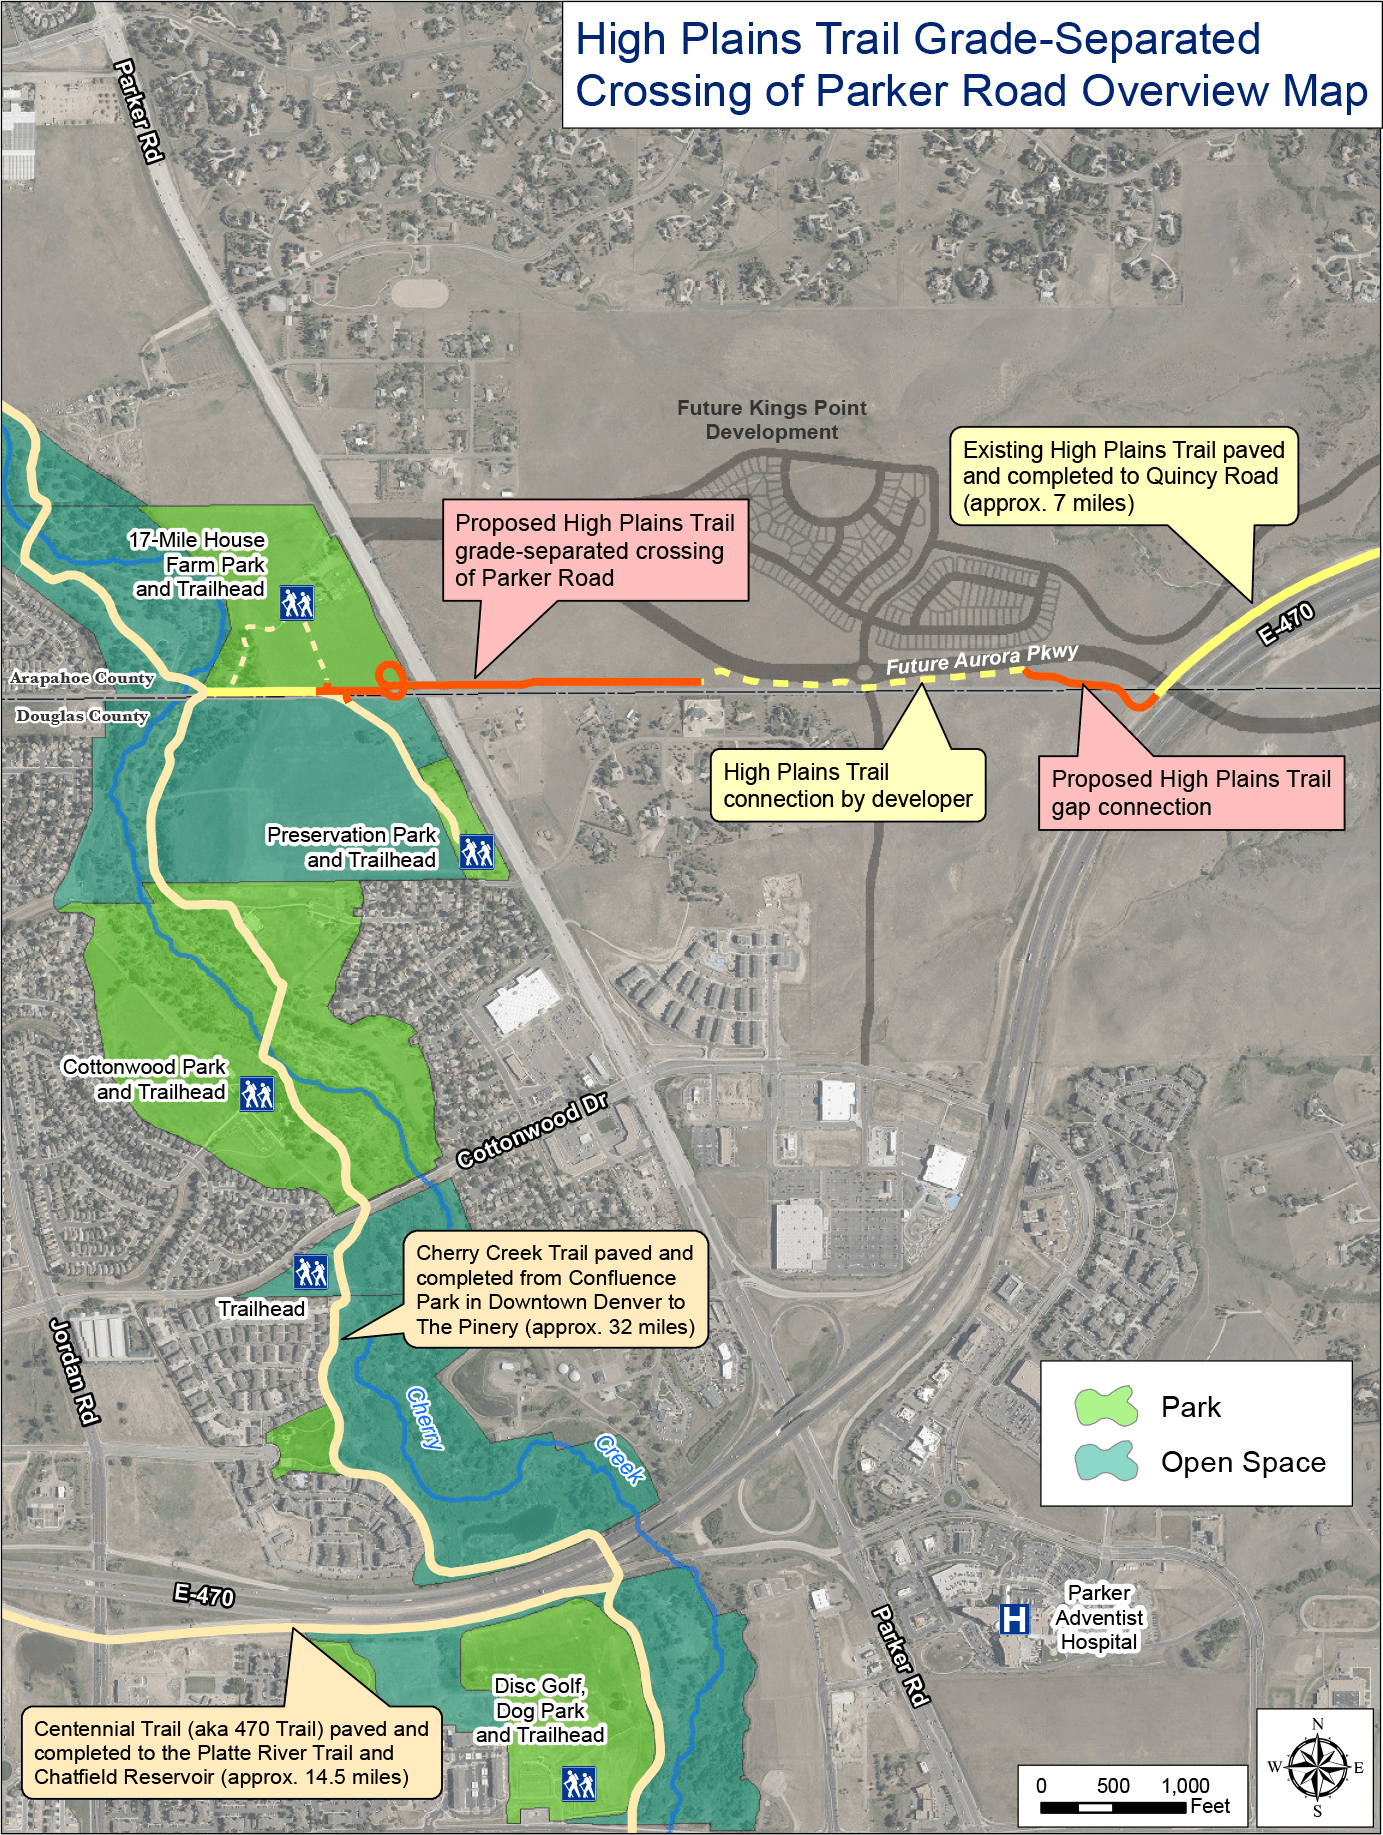 High Plains Trail Connection Gap Detailed Map